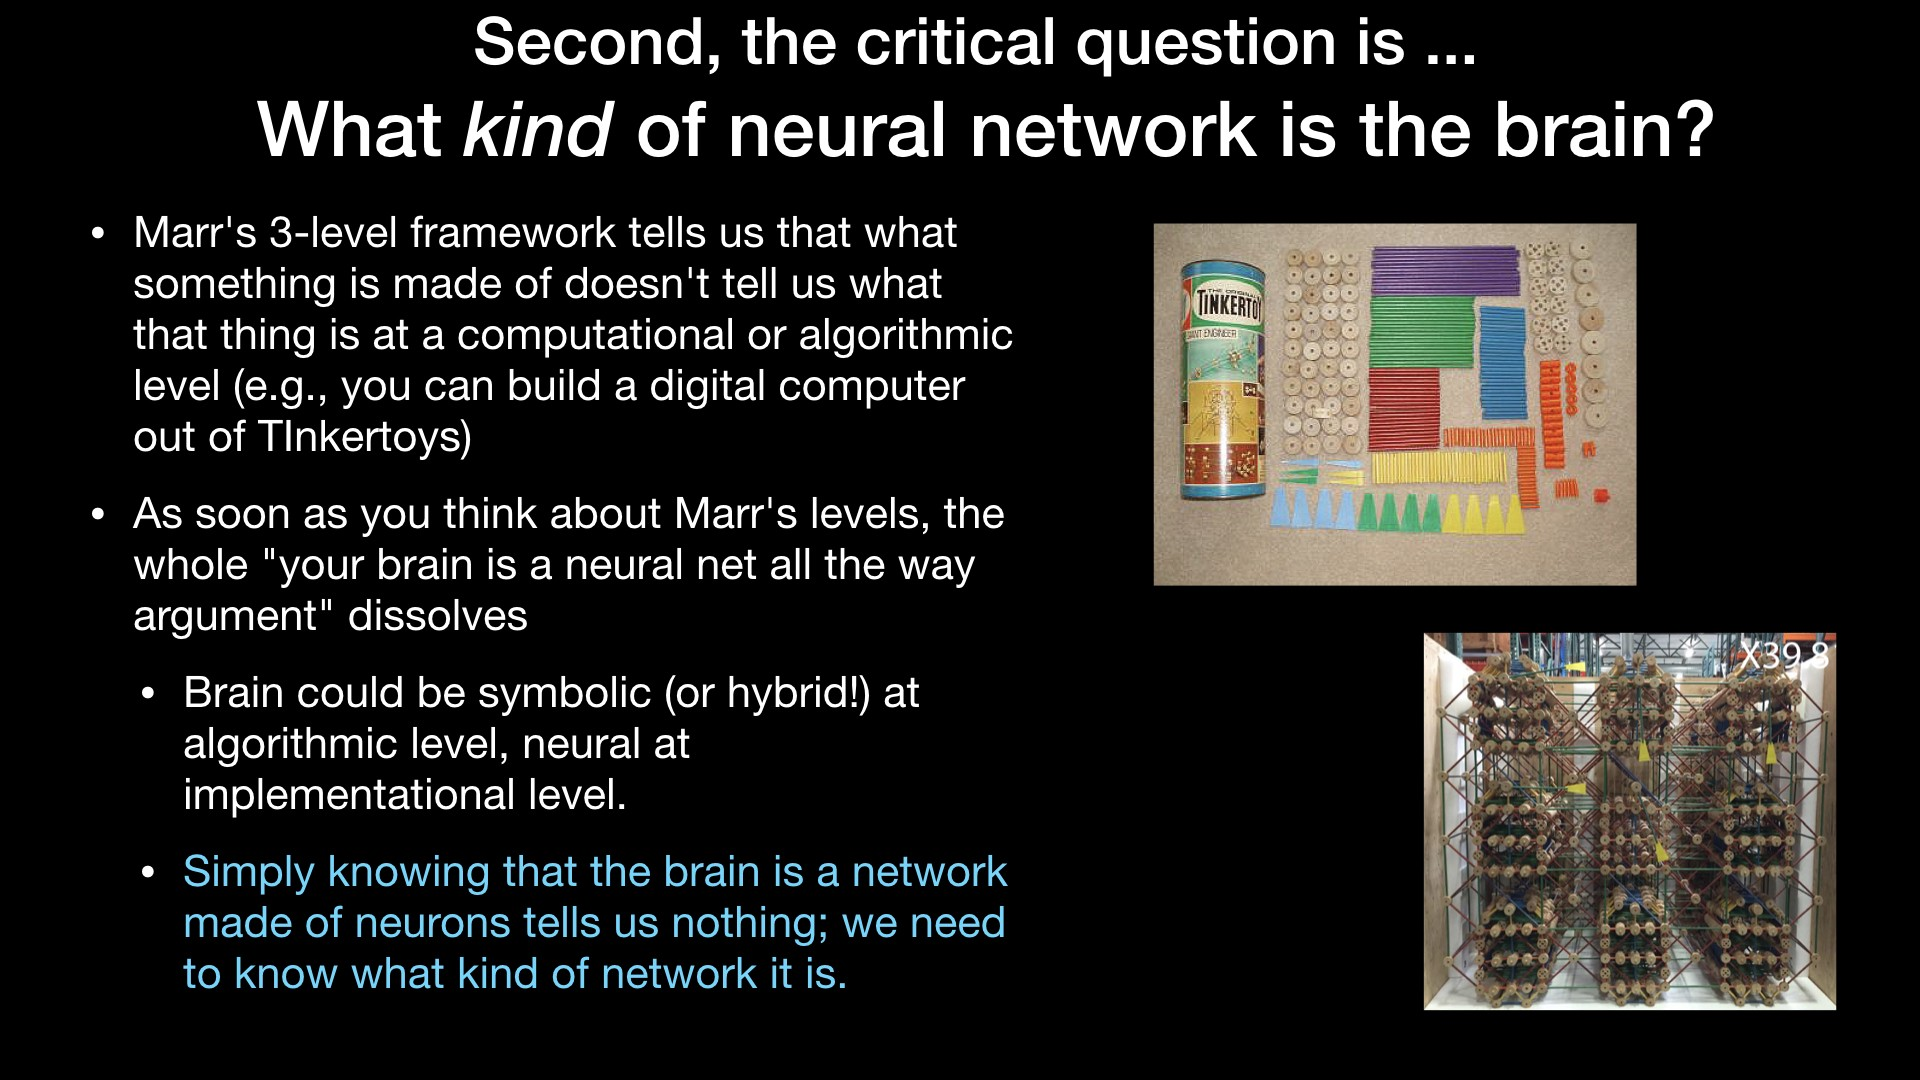 What kind of neural network is the brain?